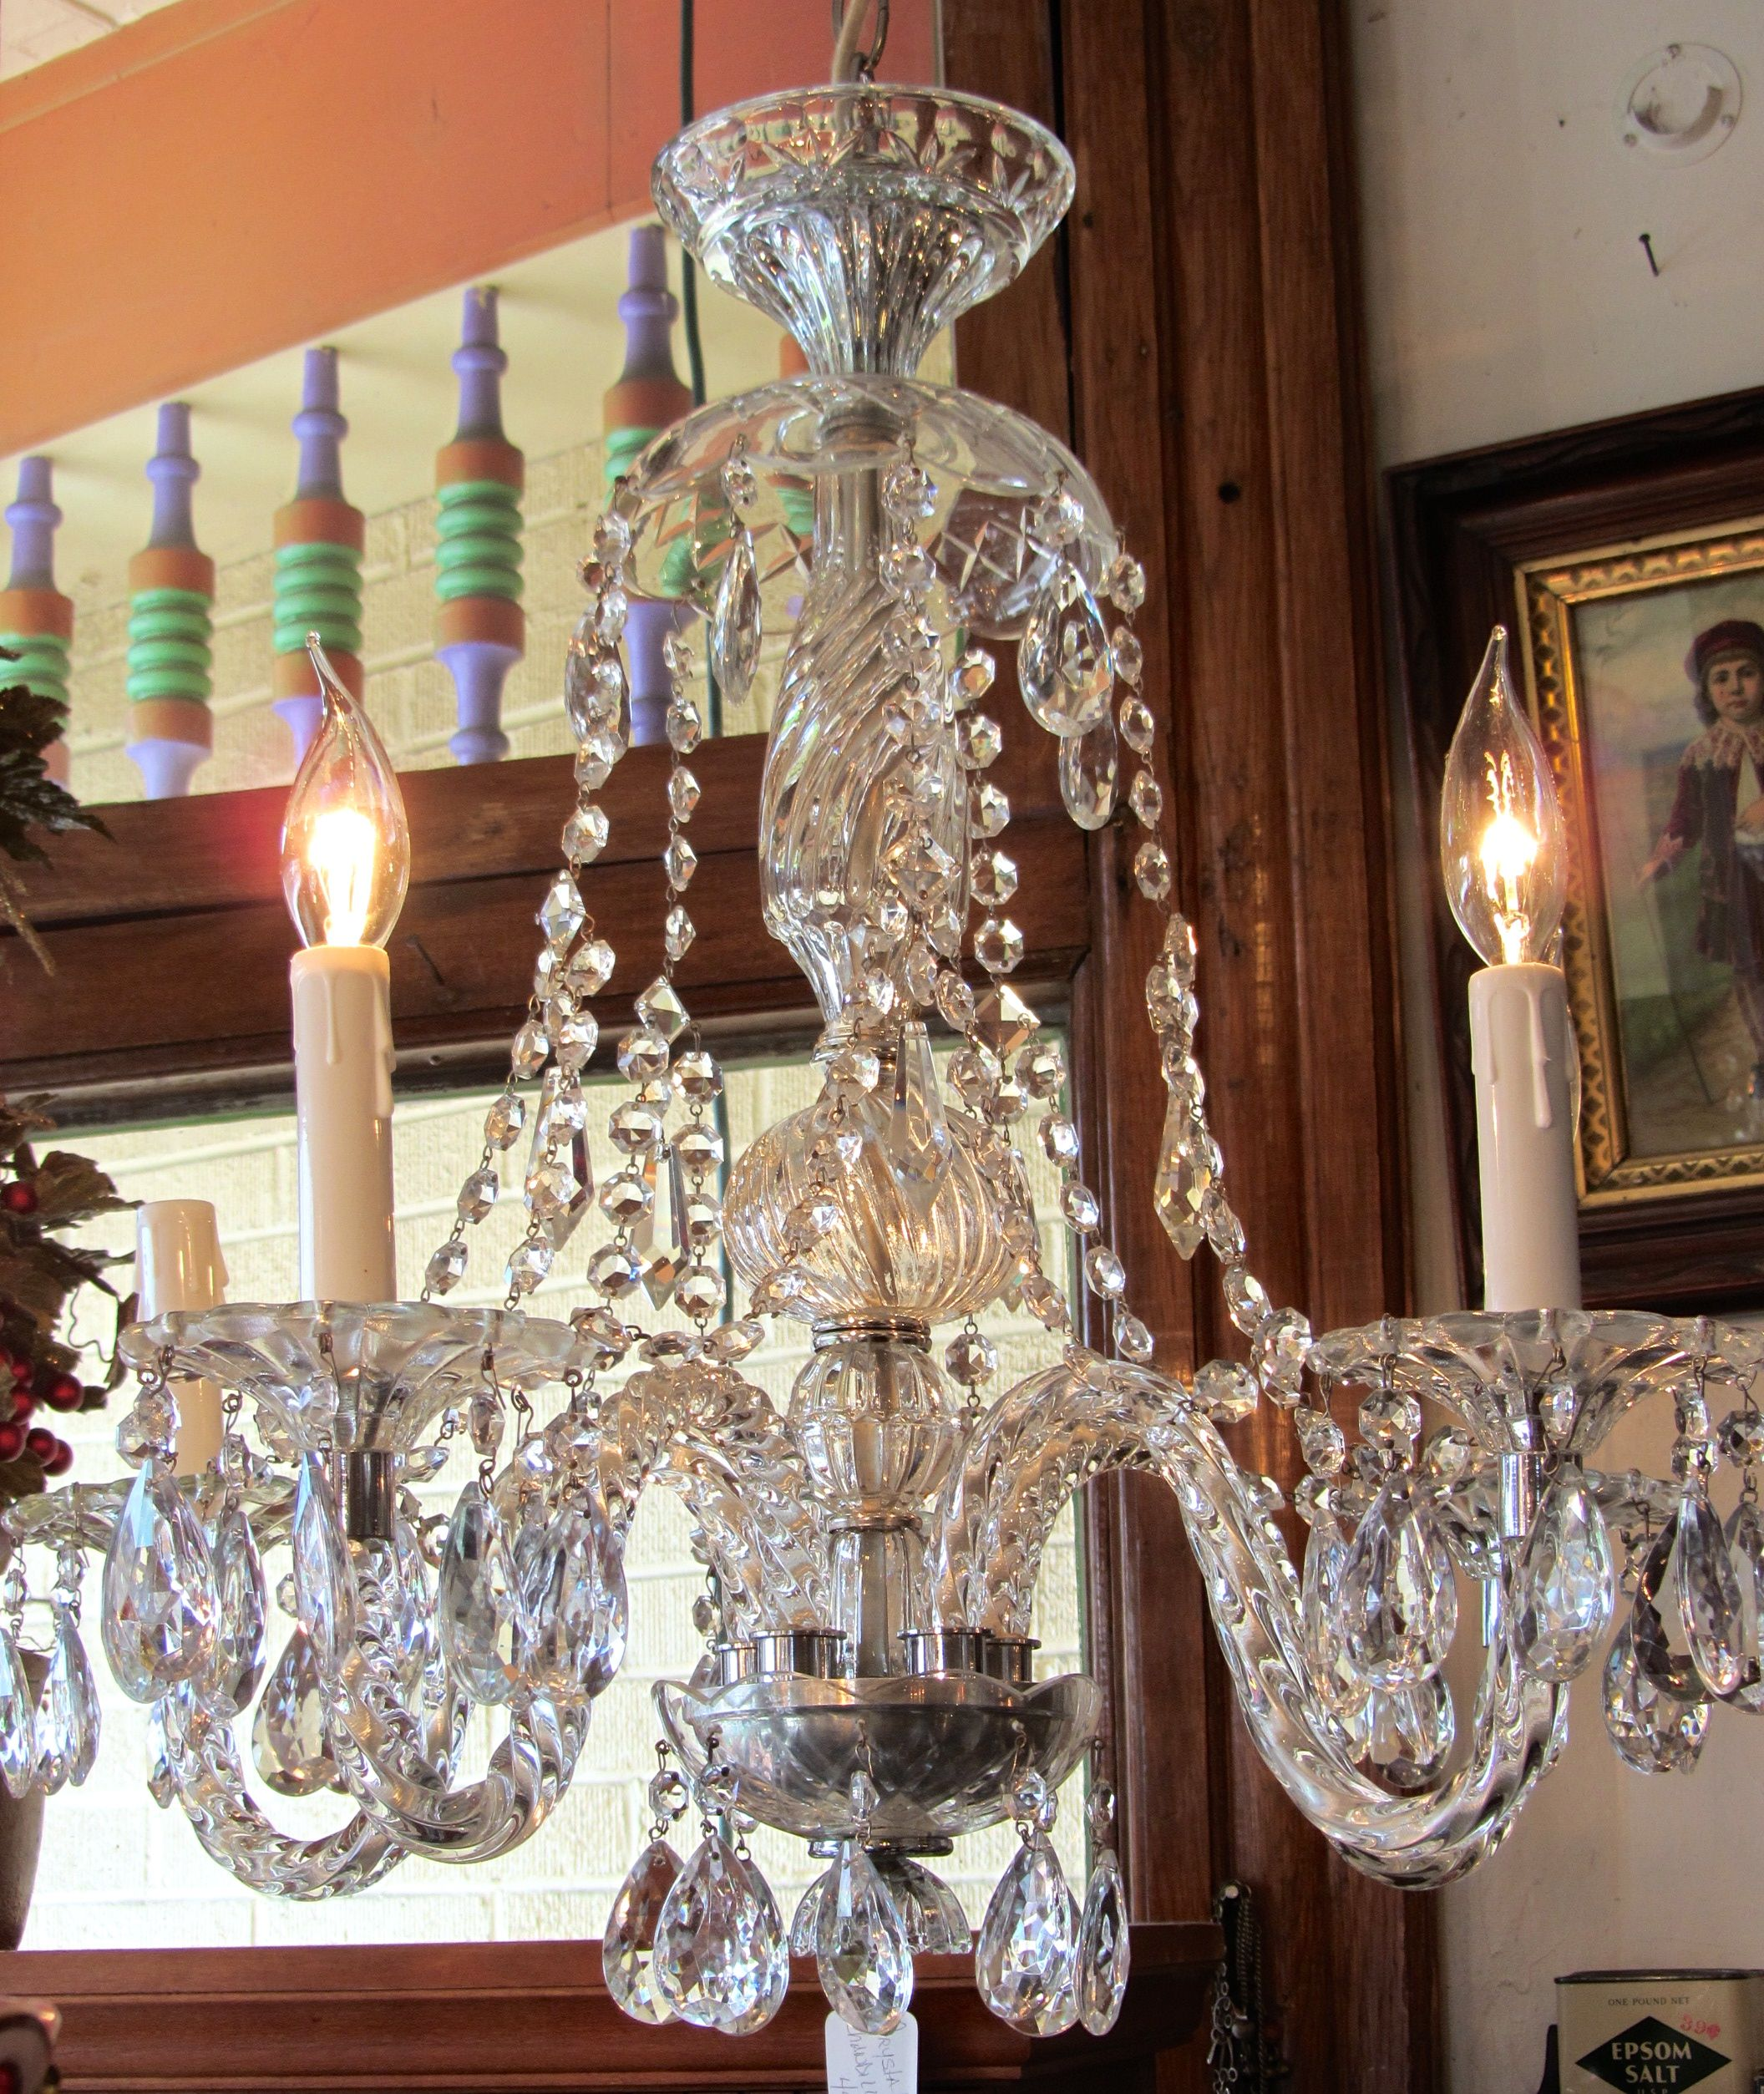 Antique crystal chandelier 5 arm with crystal swags between each antique crystal chandelier 5 arm with crystal swags between each each arm has a twisted glass pattern rewired and ready to go arubaitofo Images